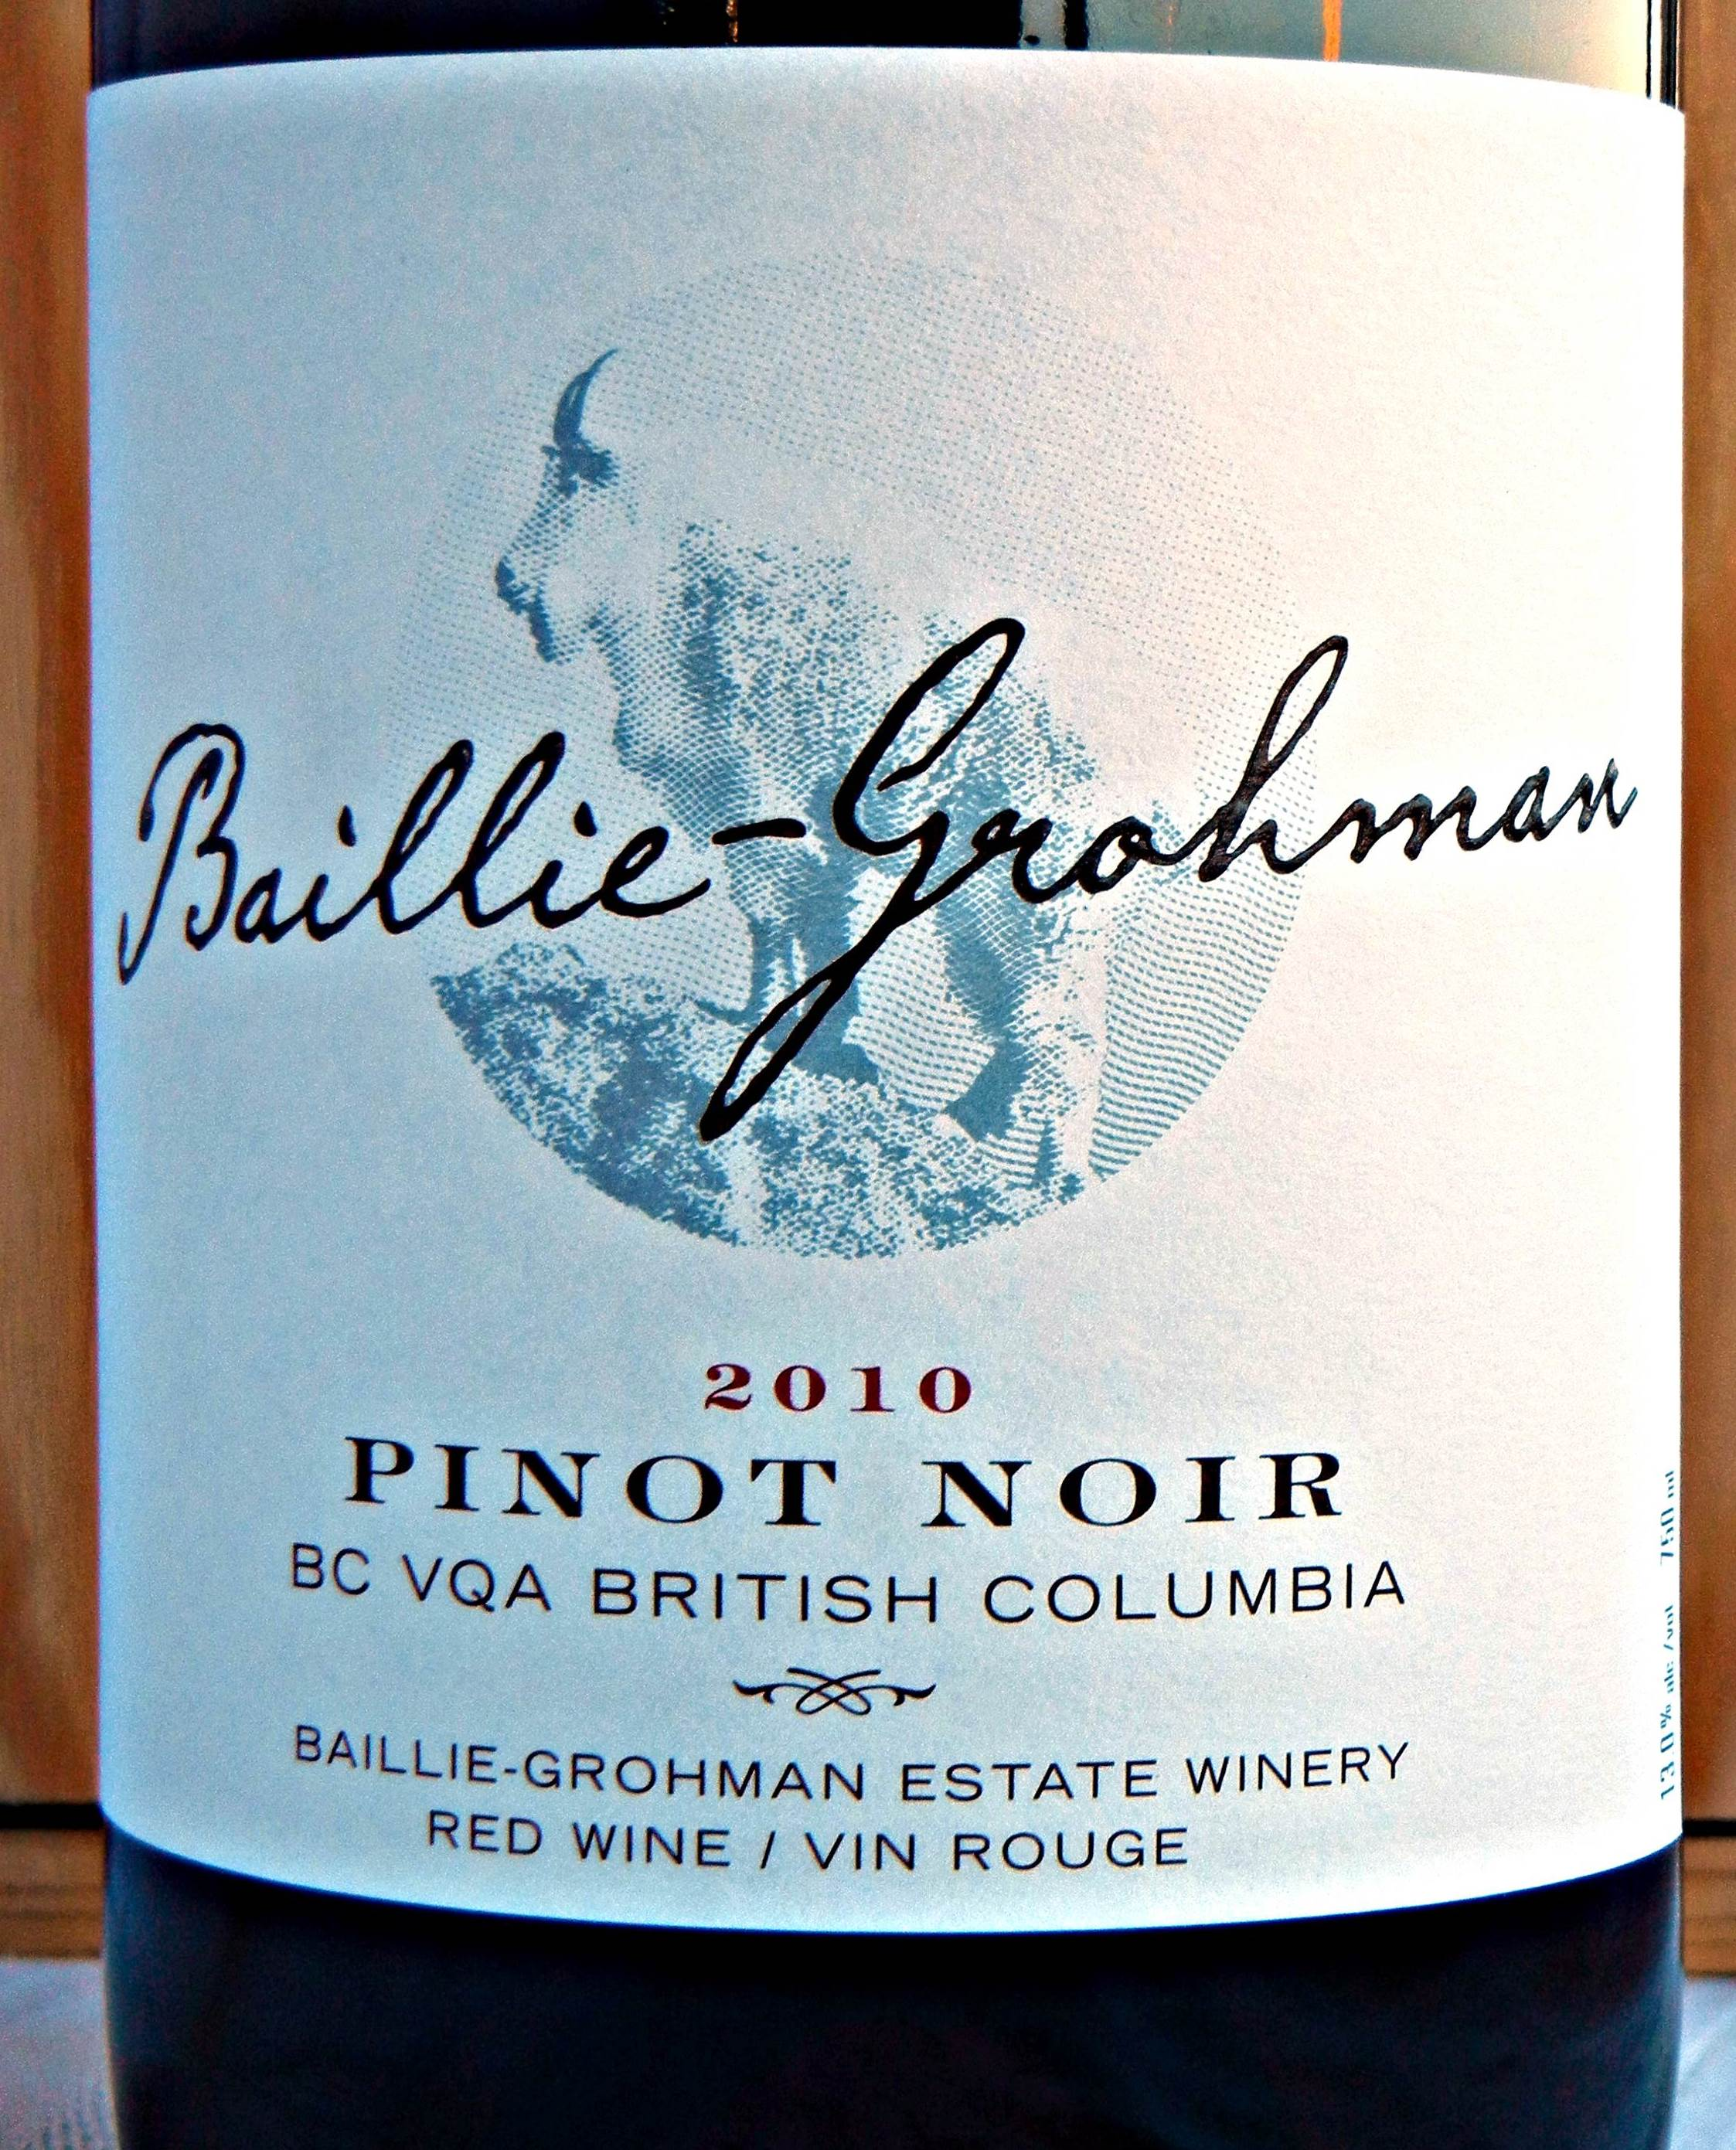 Baillie Grohman Pinot Noir 2010 Label - BC Pinot Noir Tasting Review 10